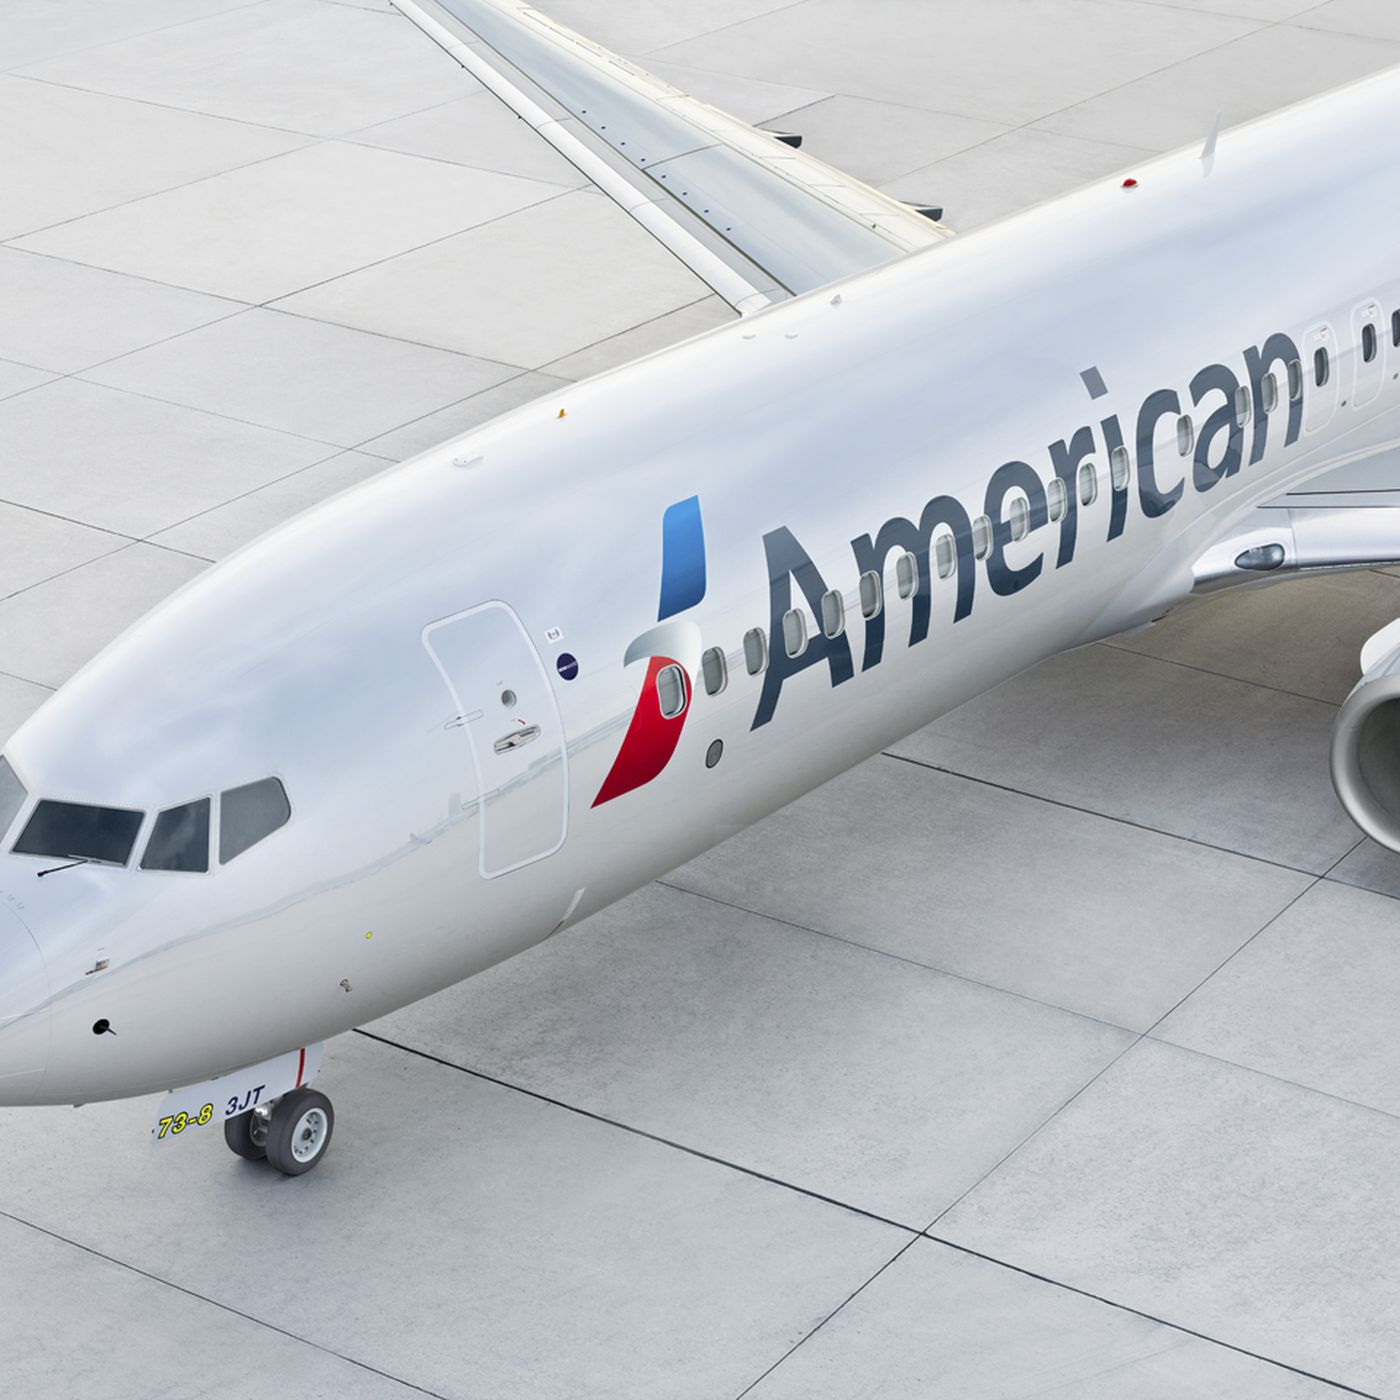 Pilots just sued American Airlines to force a halt to China flights - The  Verge